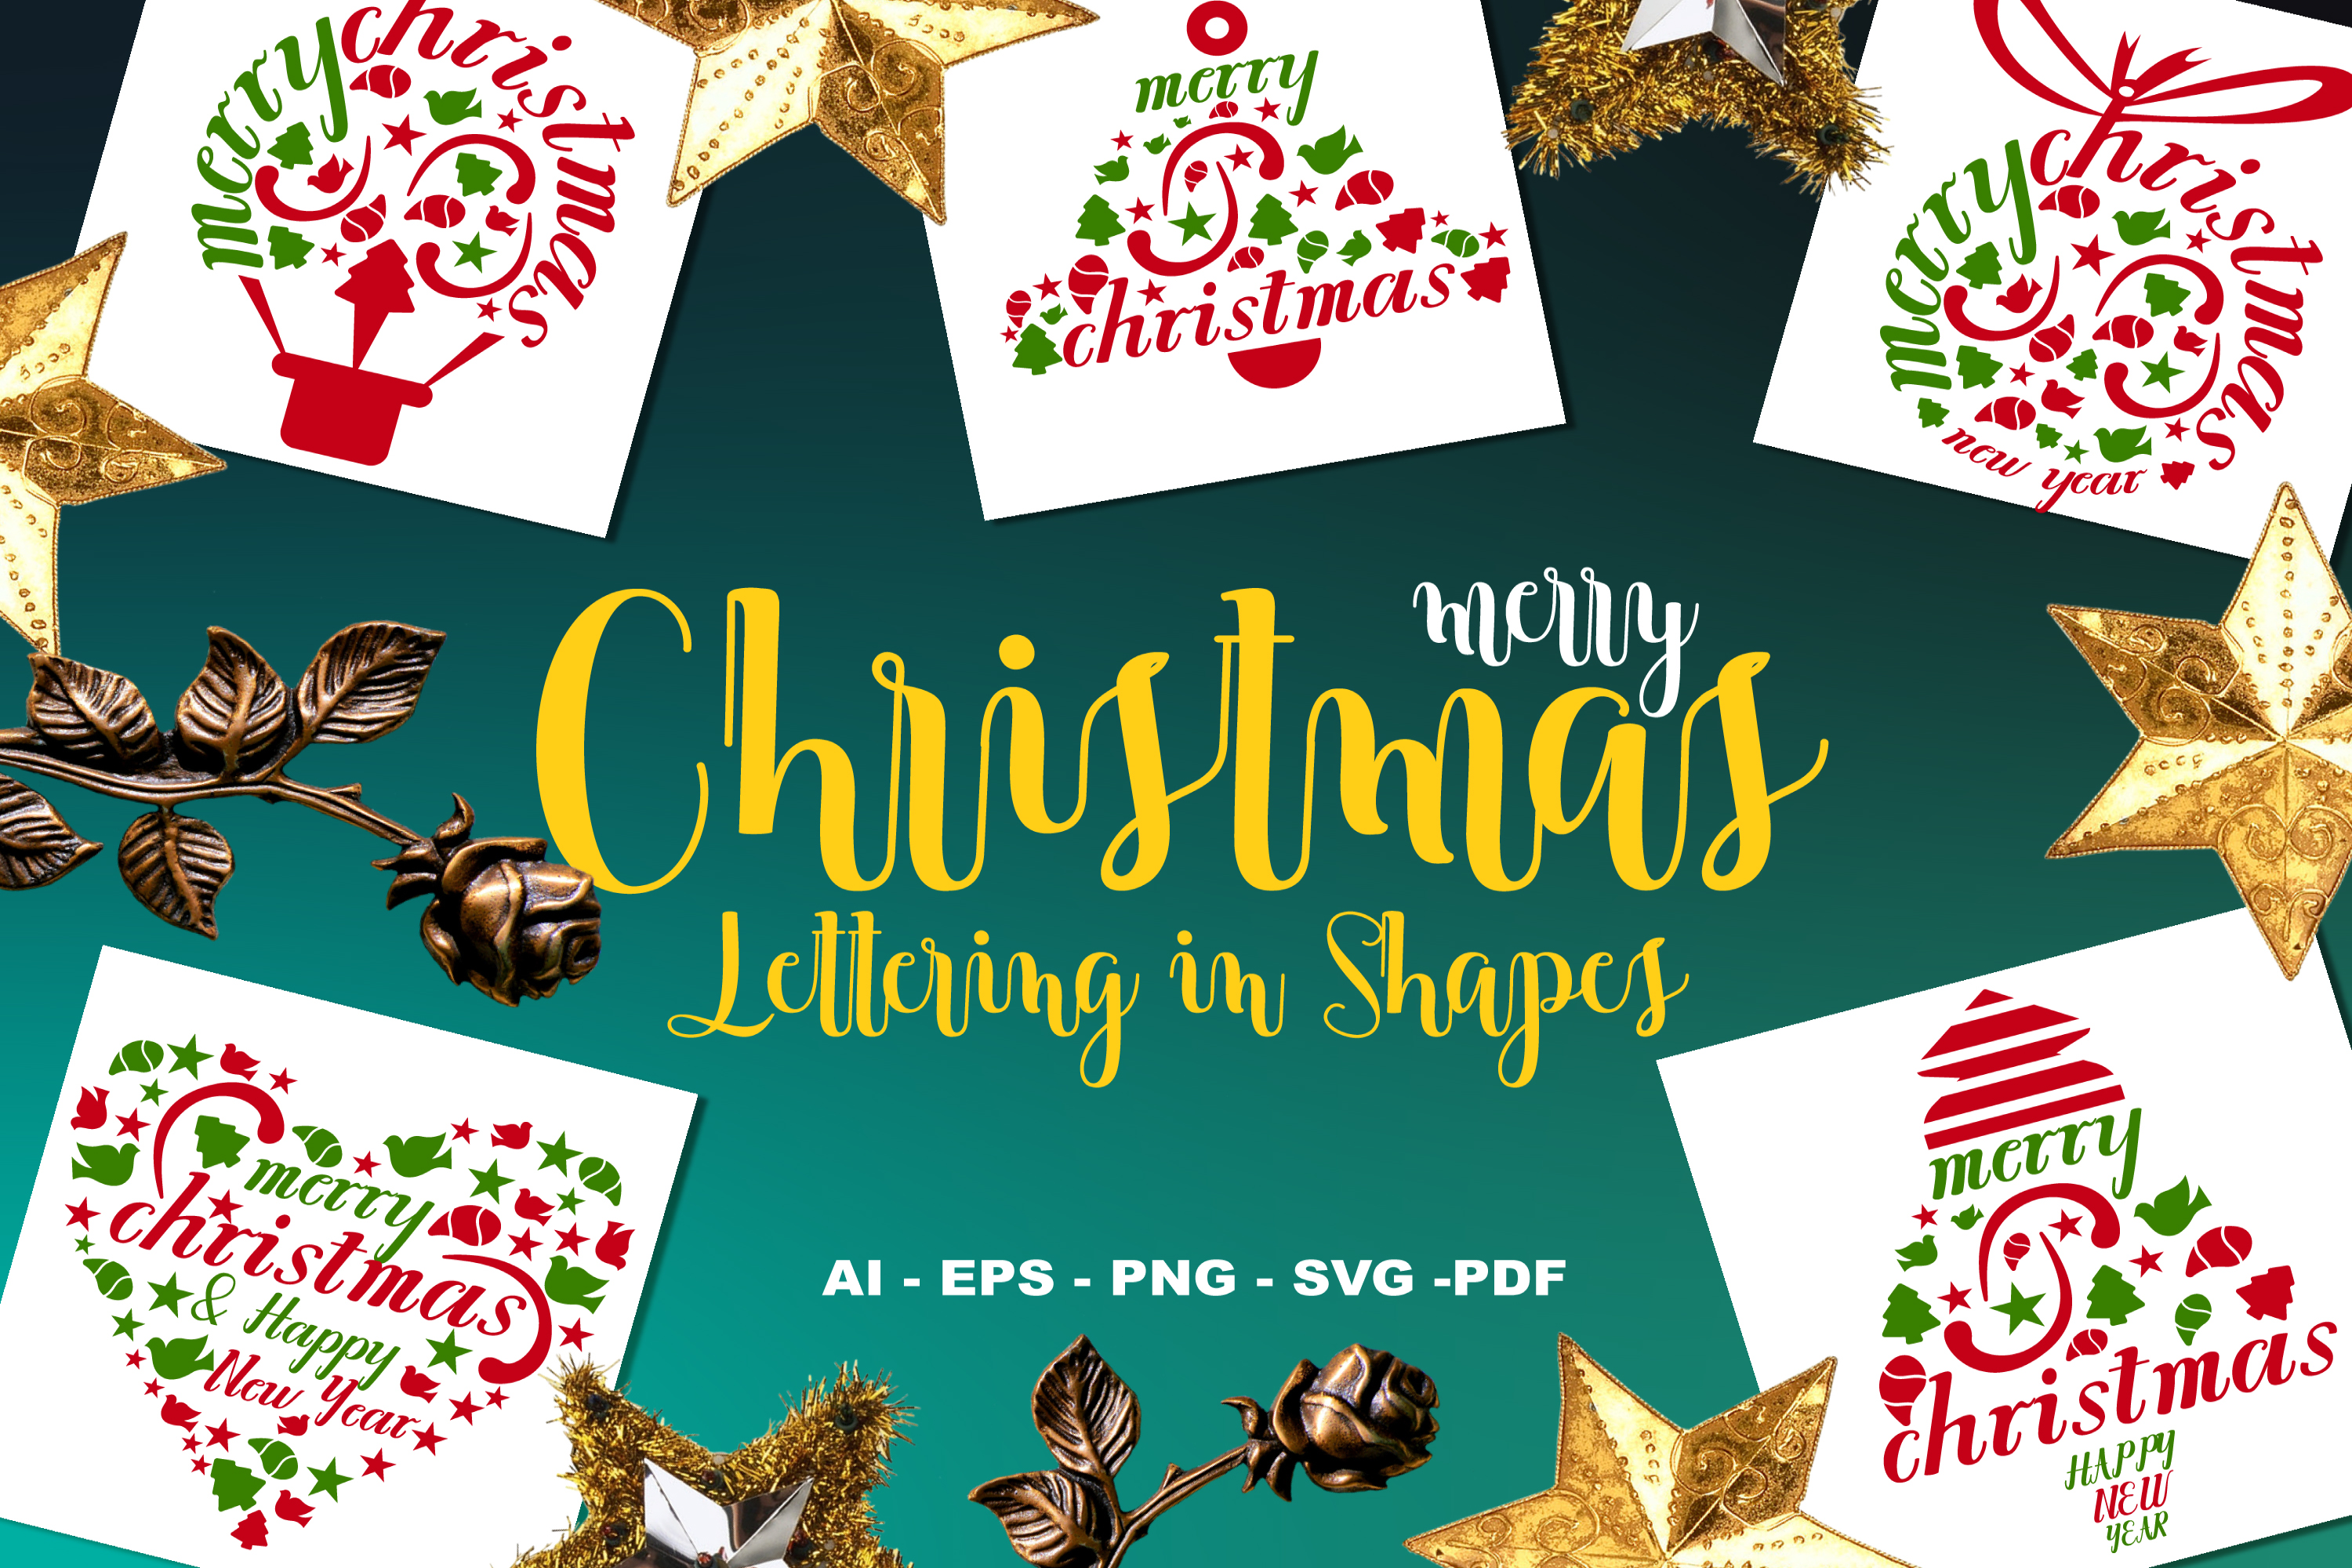 Christmas Lettering.Merry Christmas Lettering In Shapes